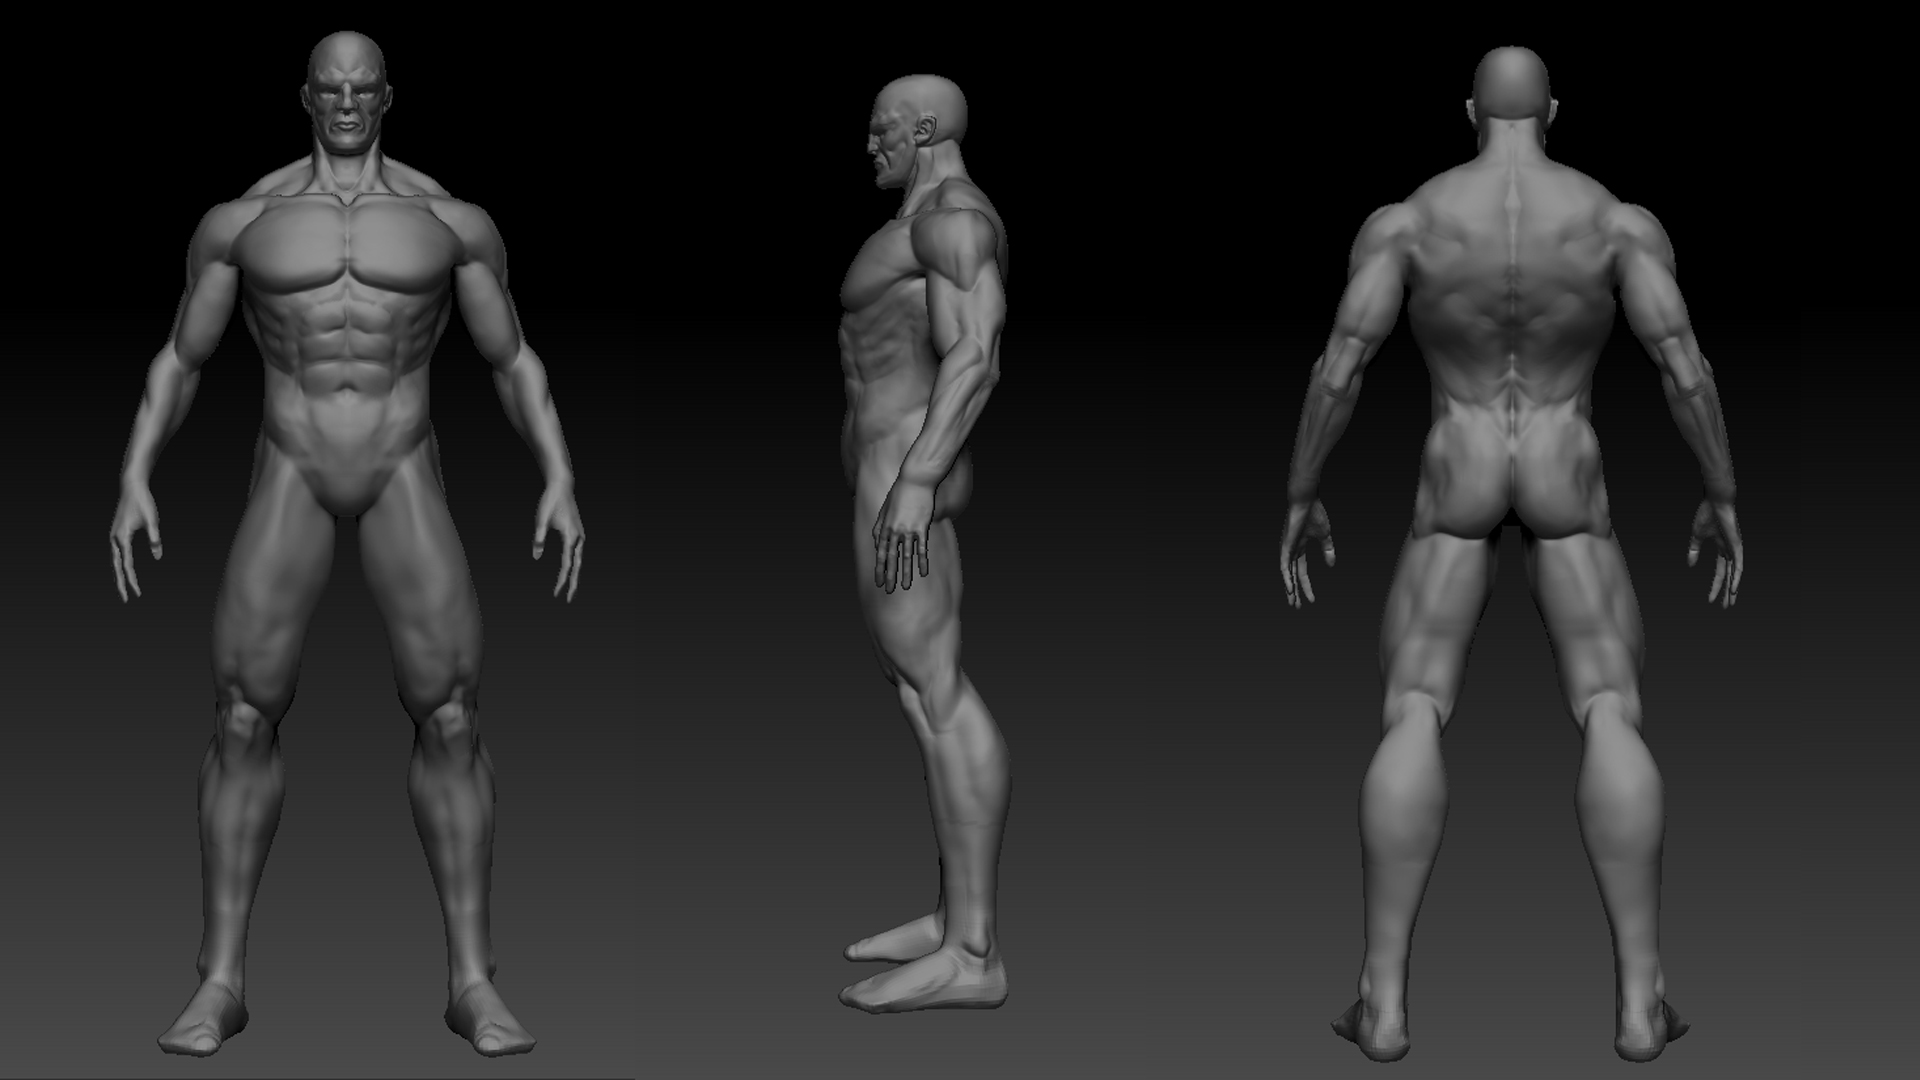 http://www.zbrushcentral.com/attachment.php?attachmentid=374158